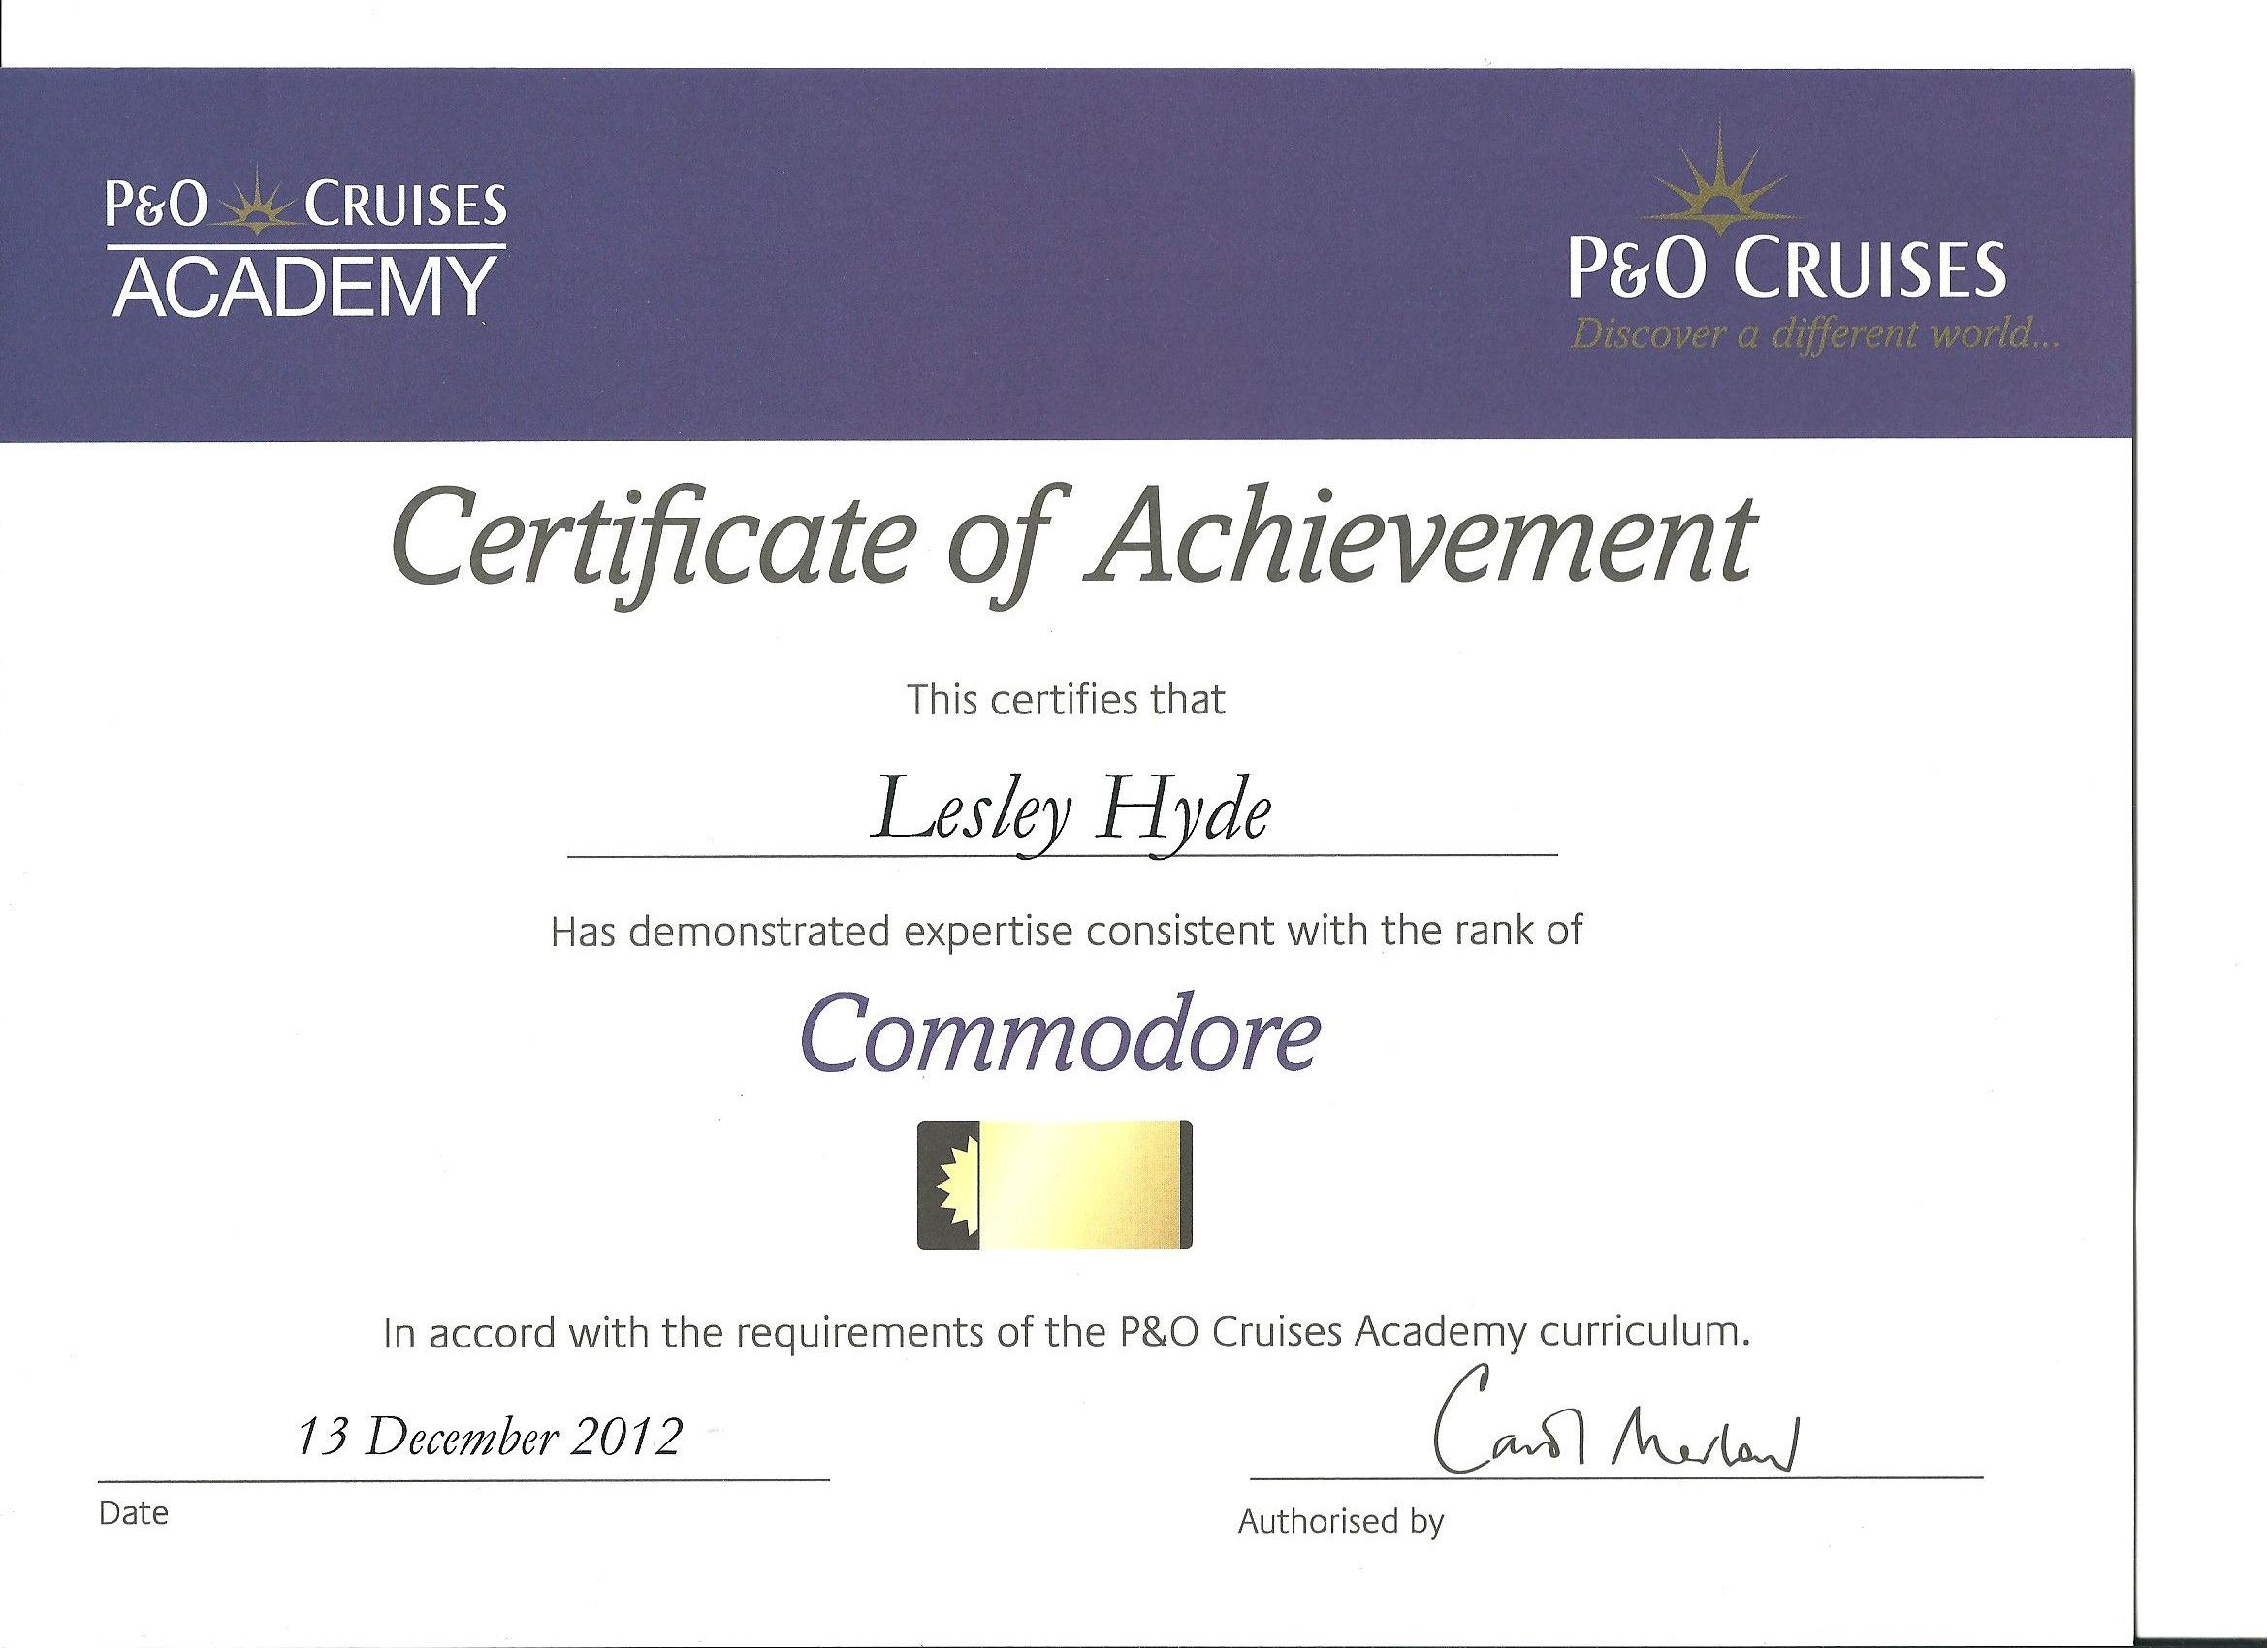 Proud to receive my Certificate of Achievement from P